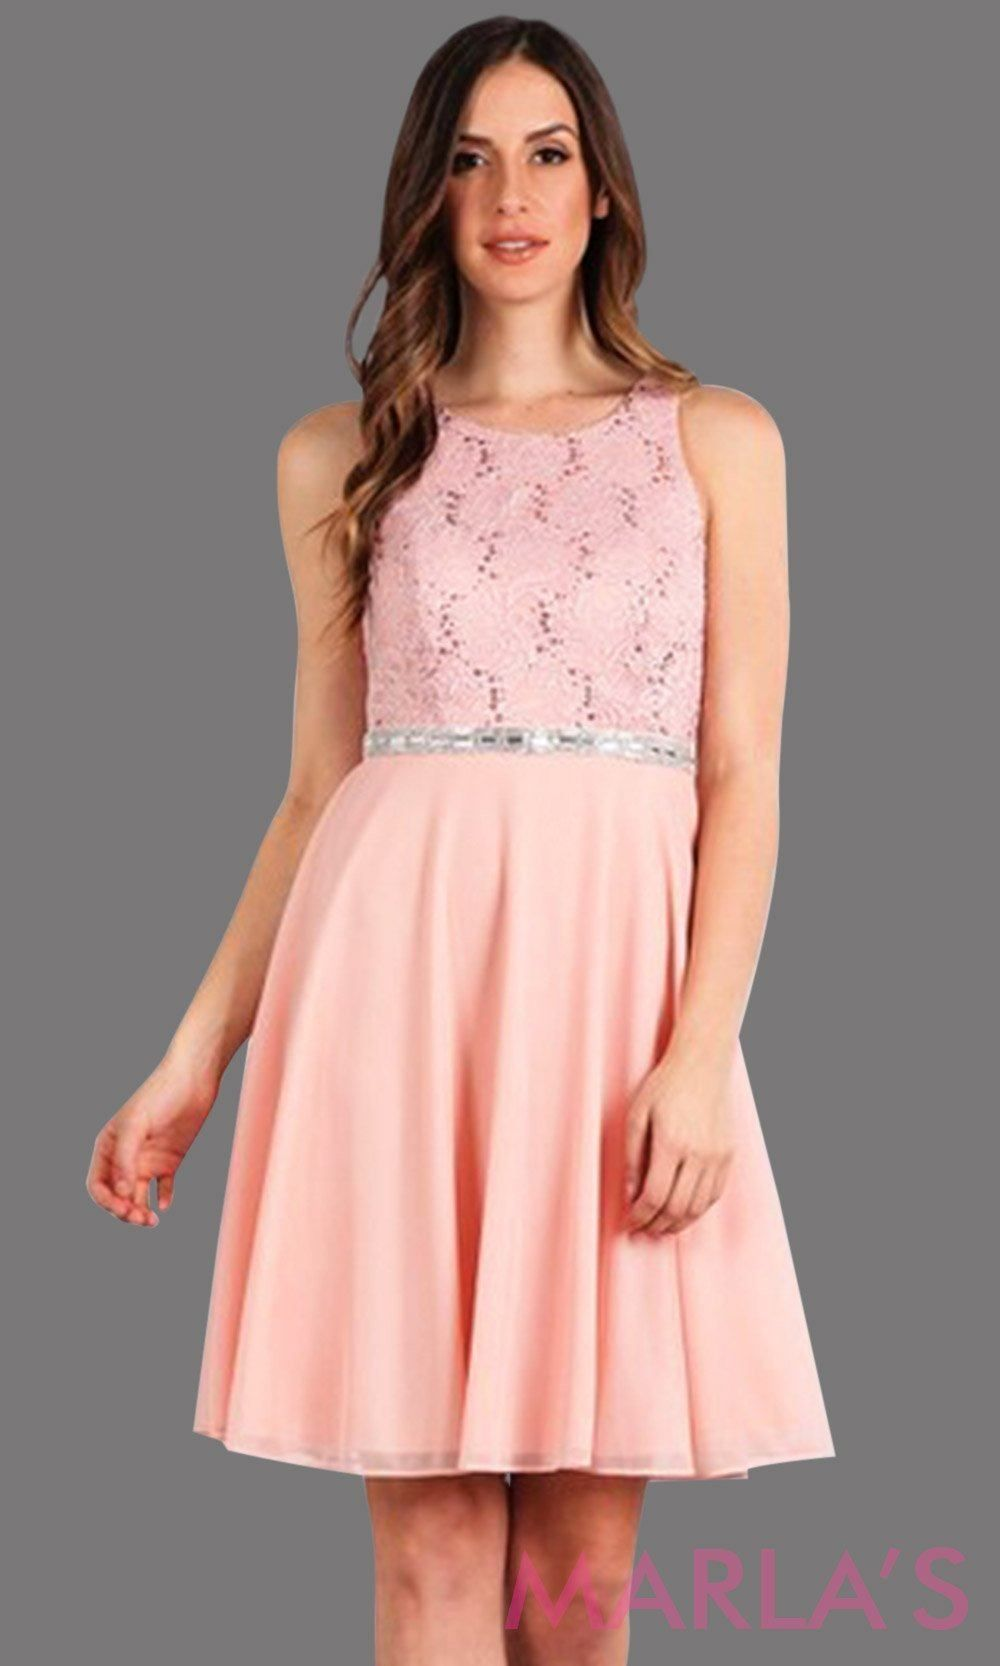 High neck flowy short dress with lace bodice and flowy pink chiffon